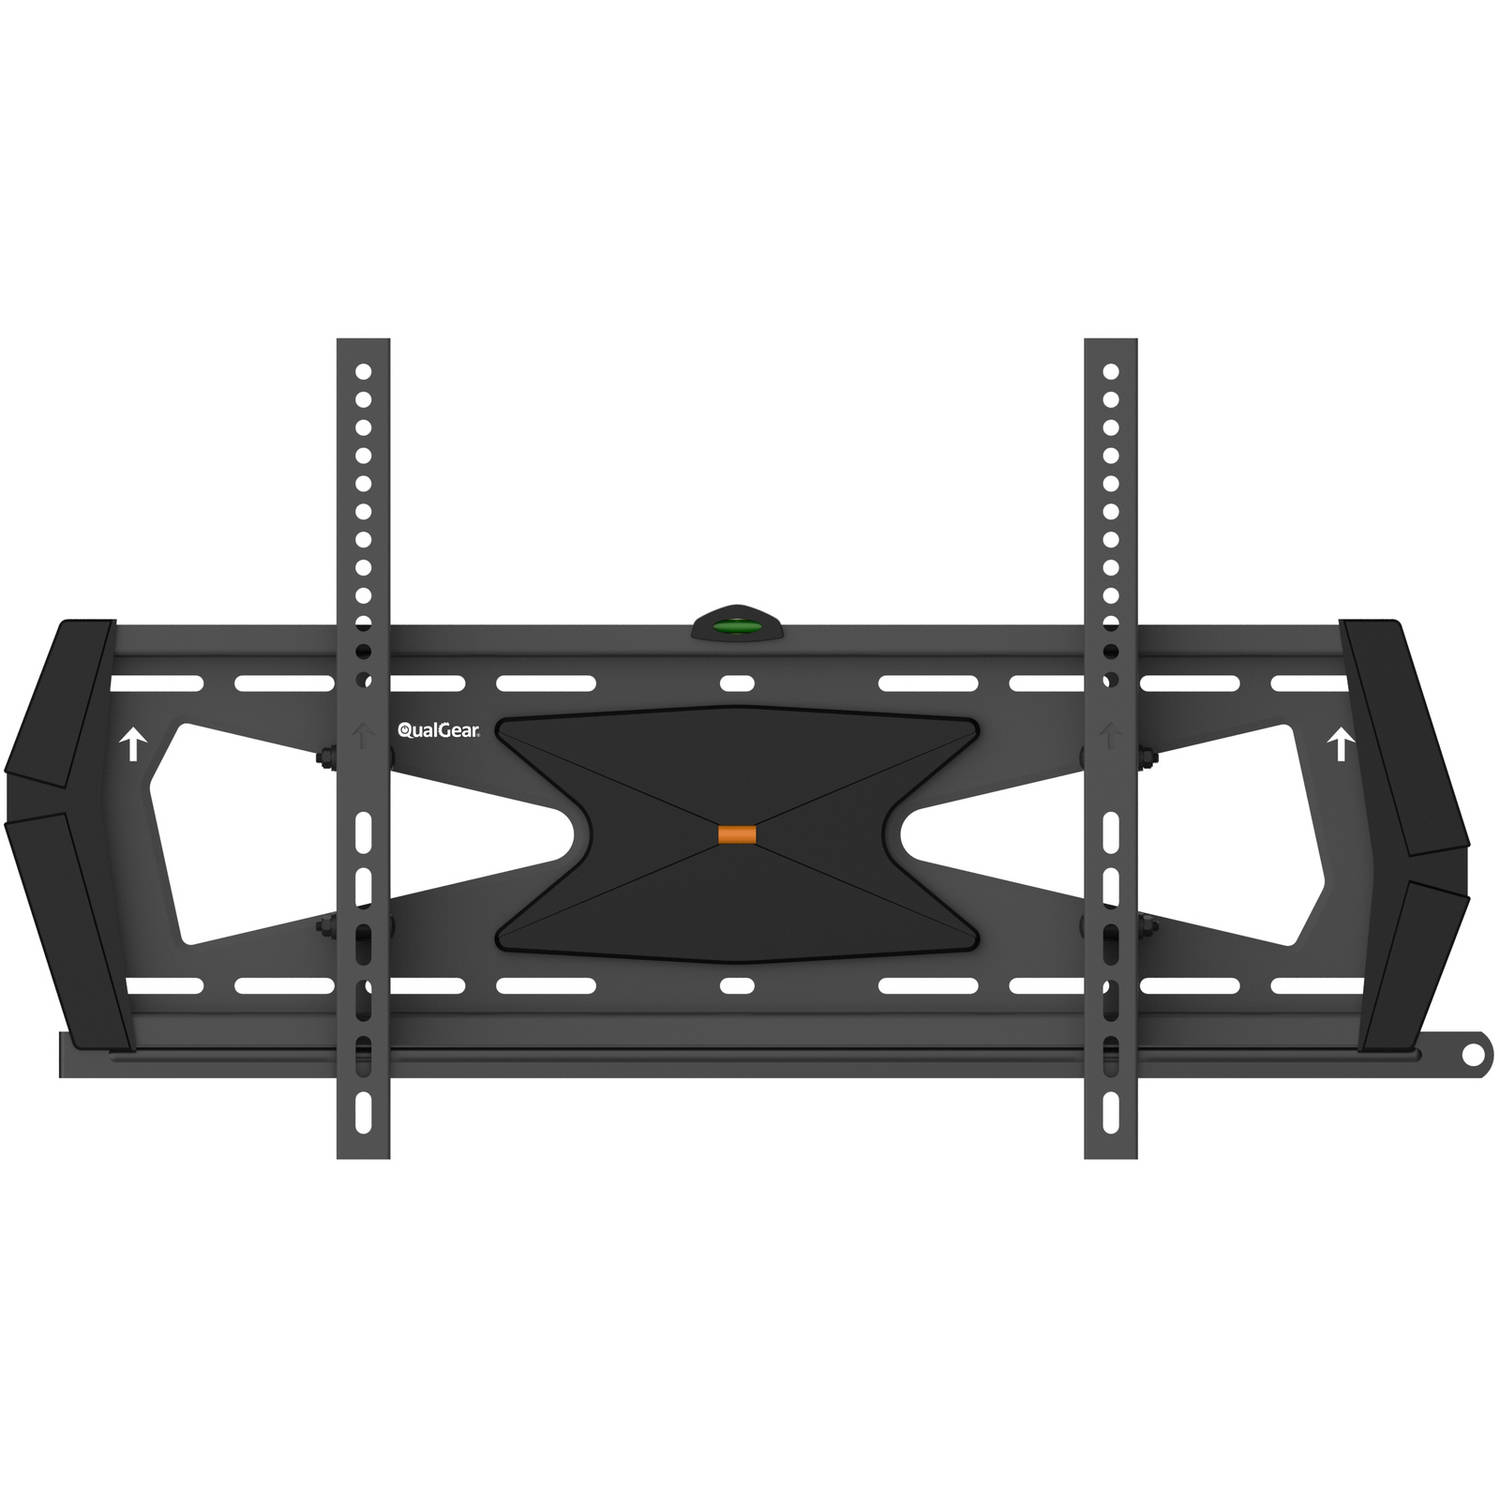 "QualGear Heavy-Duty Tilting TV Wall Mount for Most 37""-70"" Flat Panel and Curved TVs, Black"